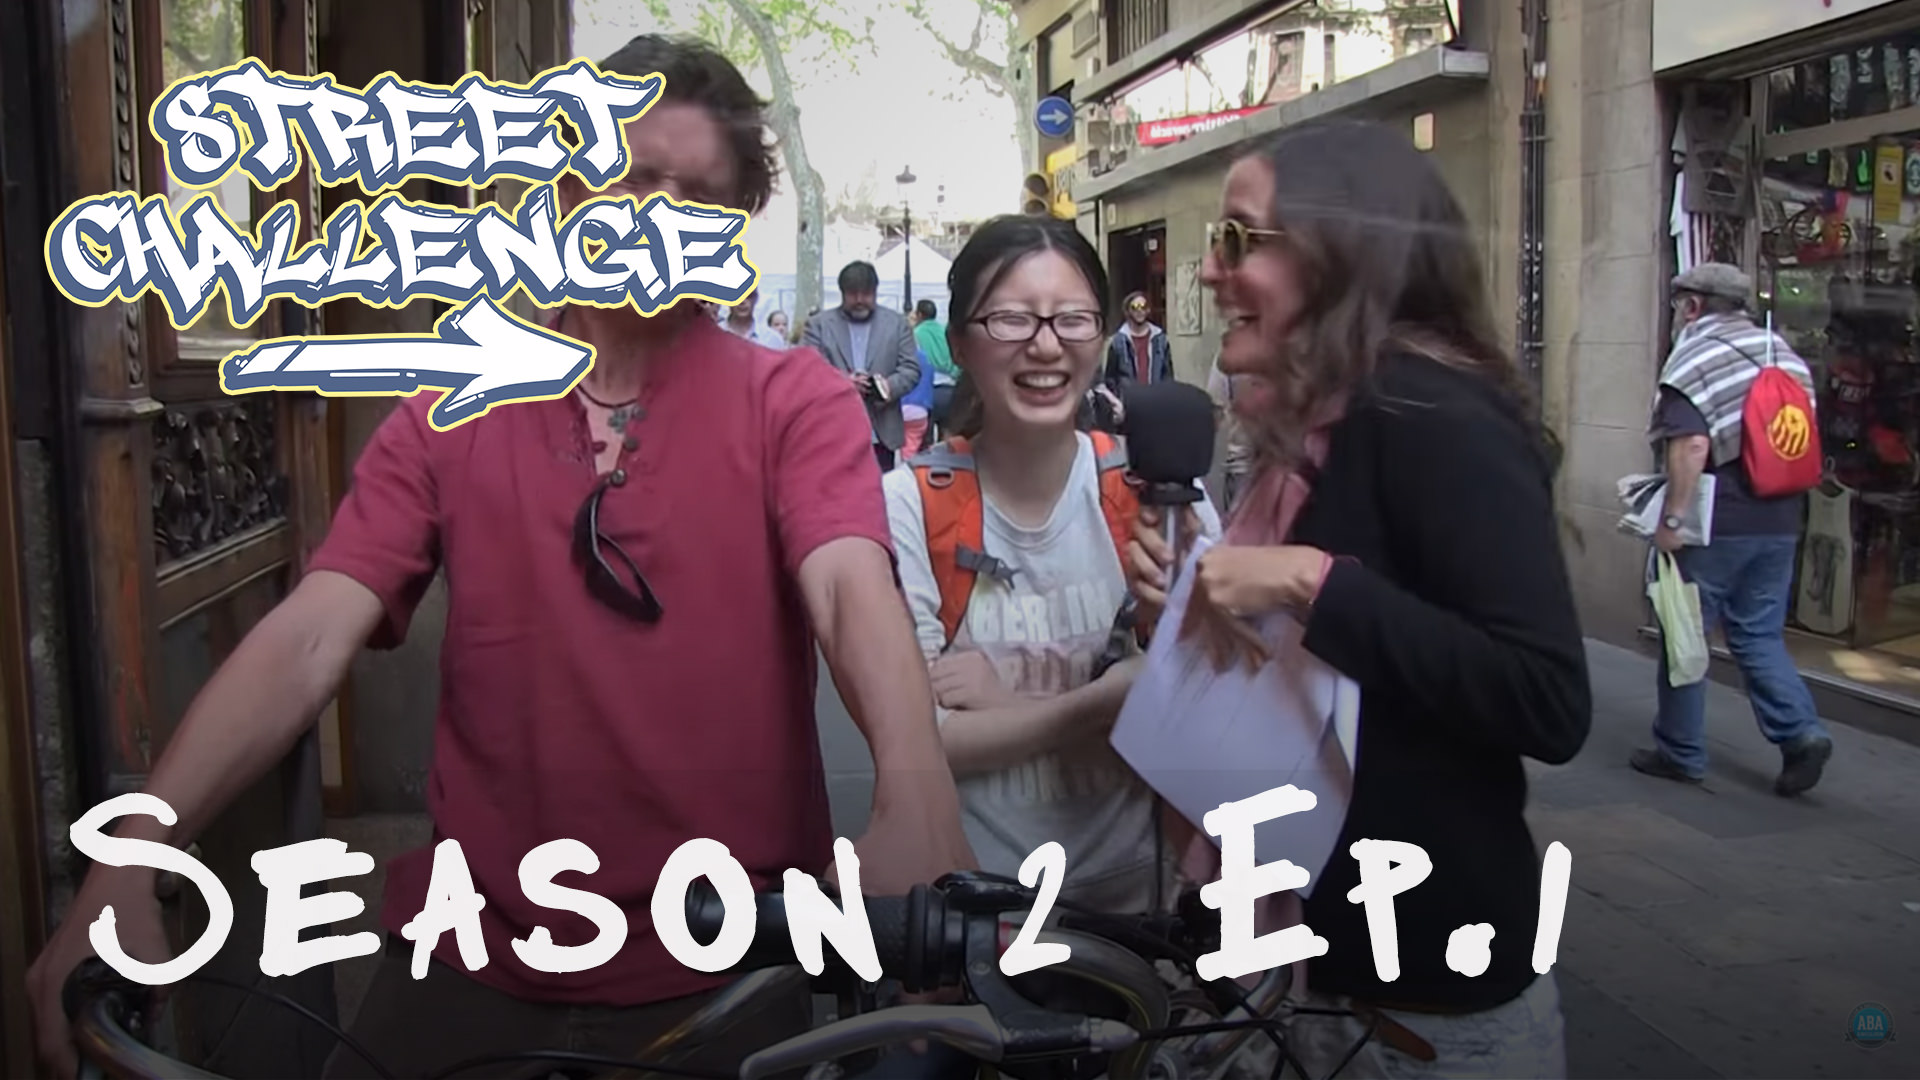 episode-1-season-2-streetchallenge-abaenglish